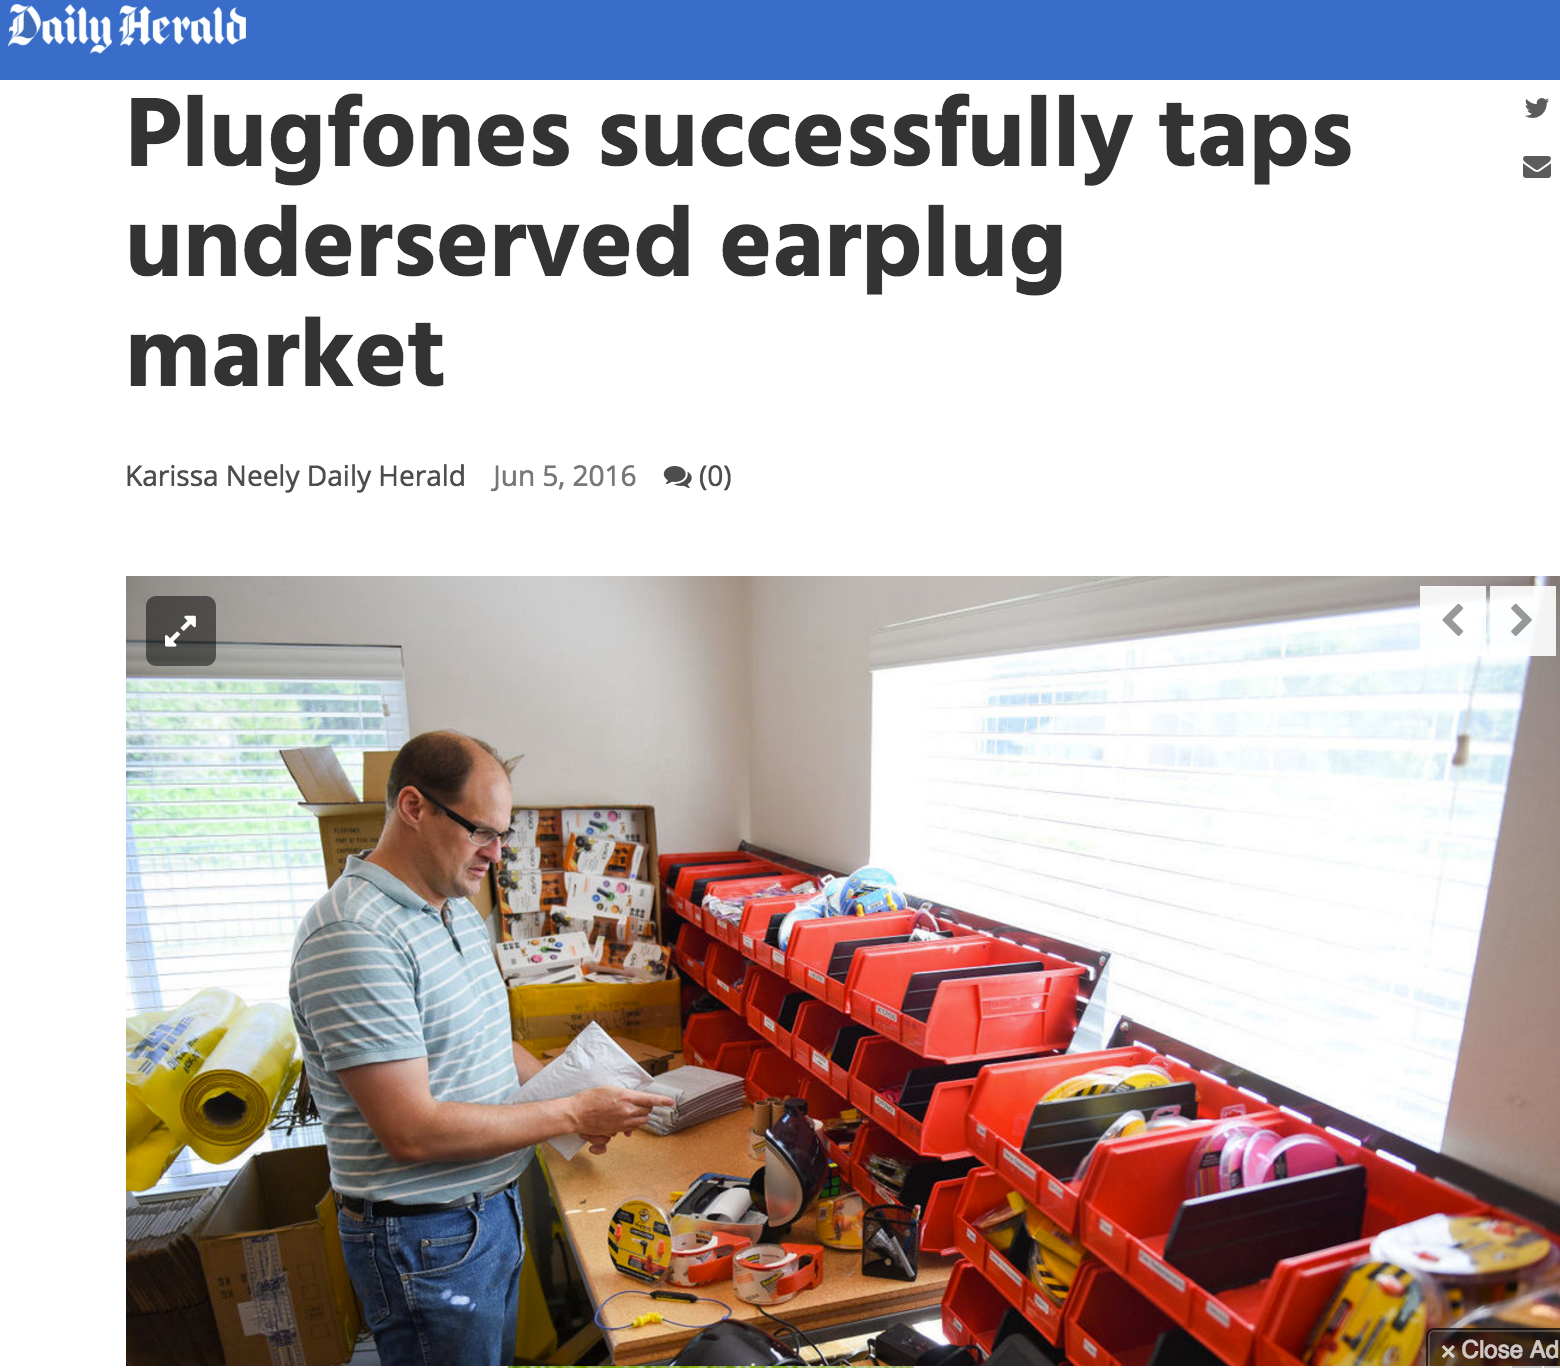 Plugfones in the Daily Herald!